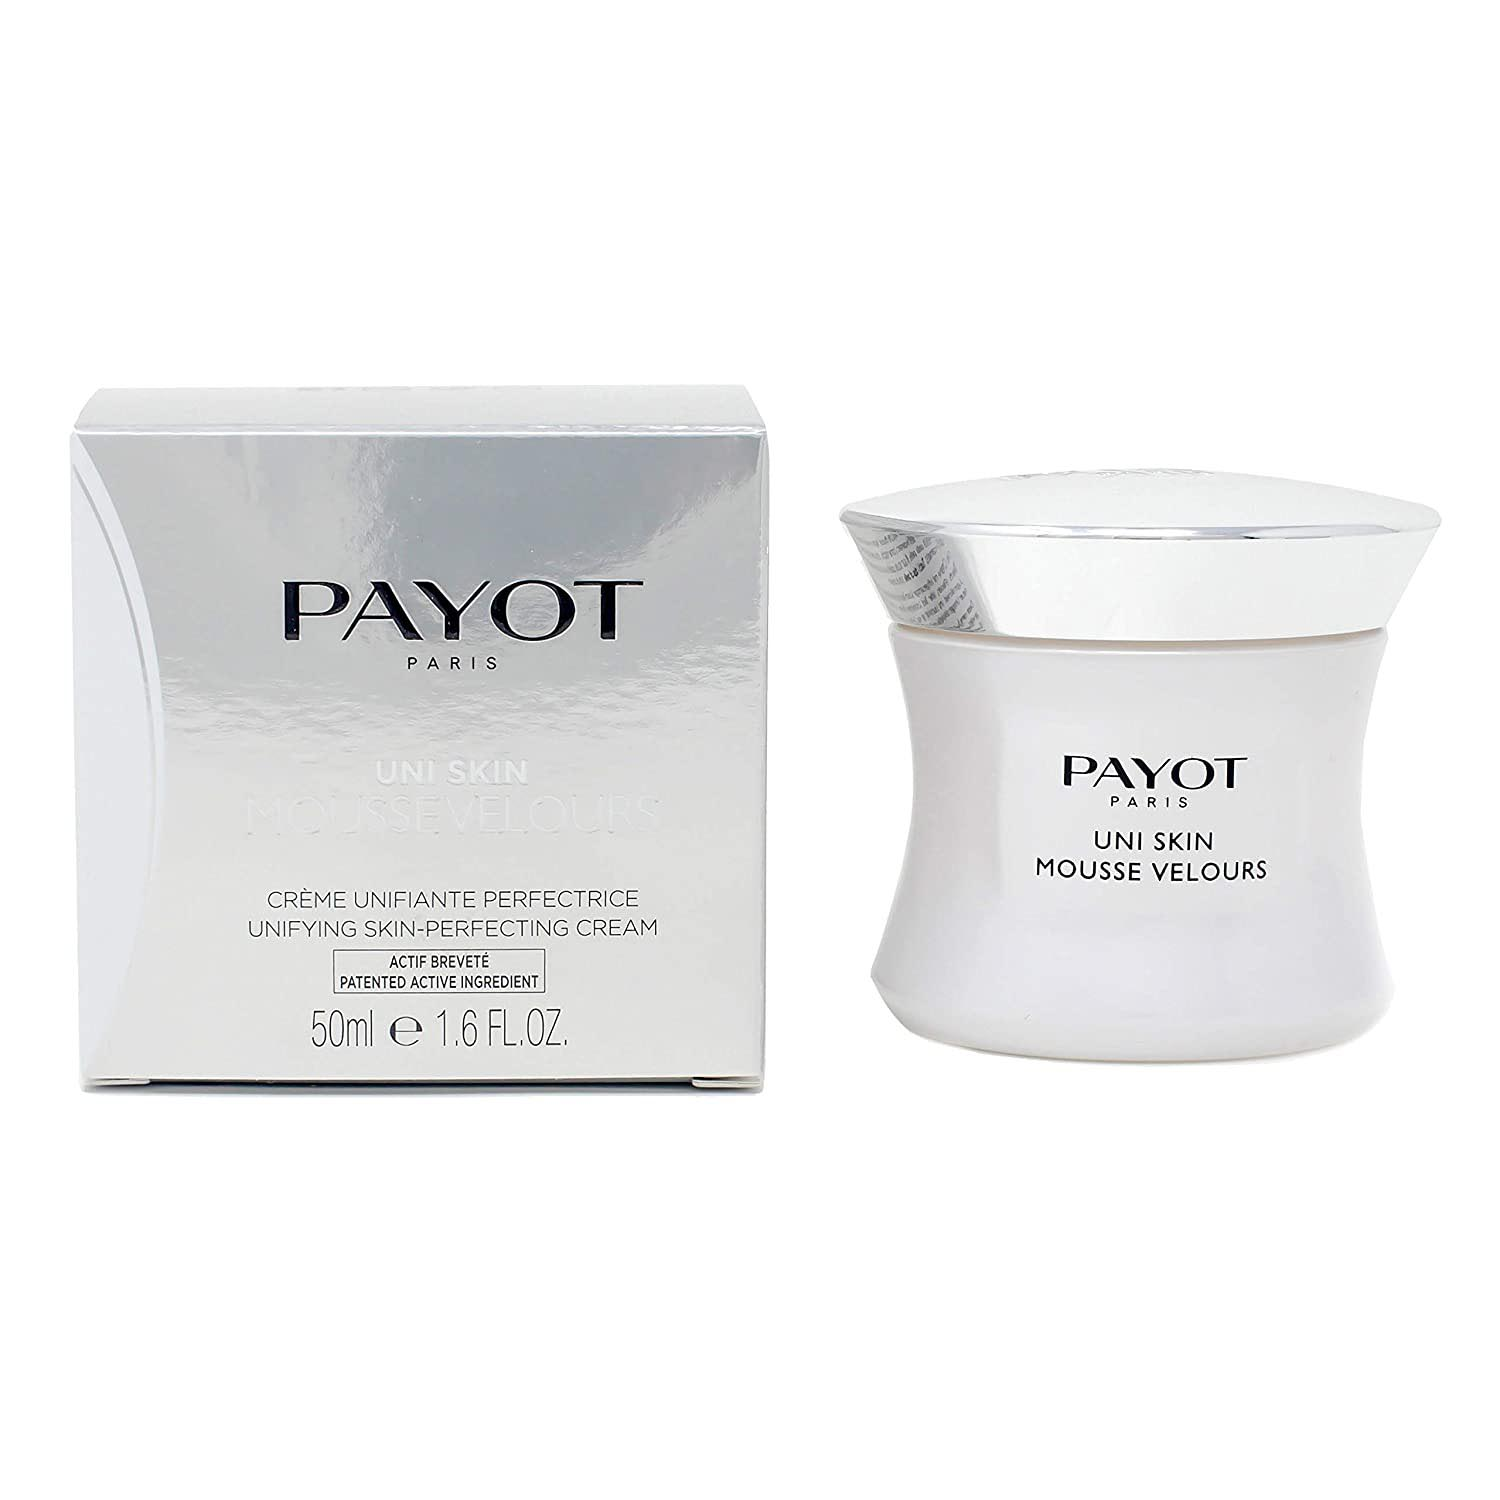 Payot uni skin mousse velours creme 50ml